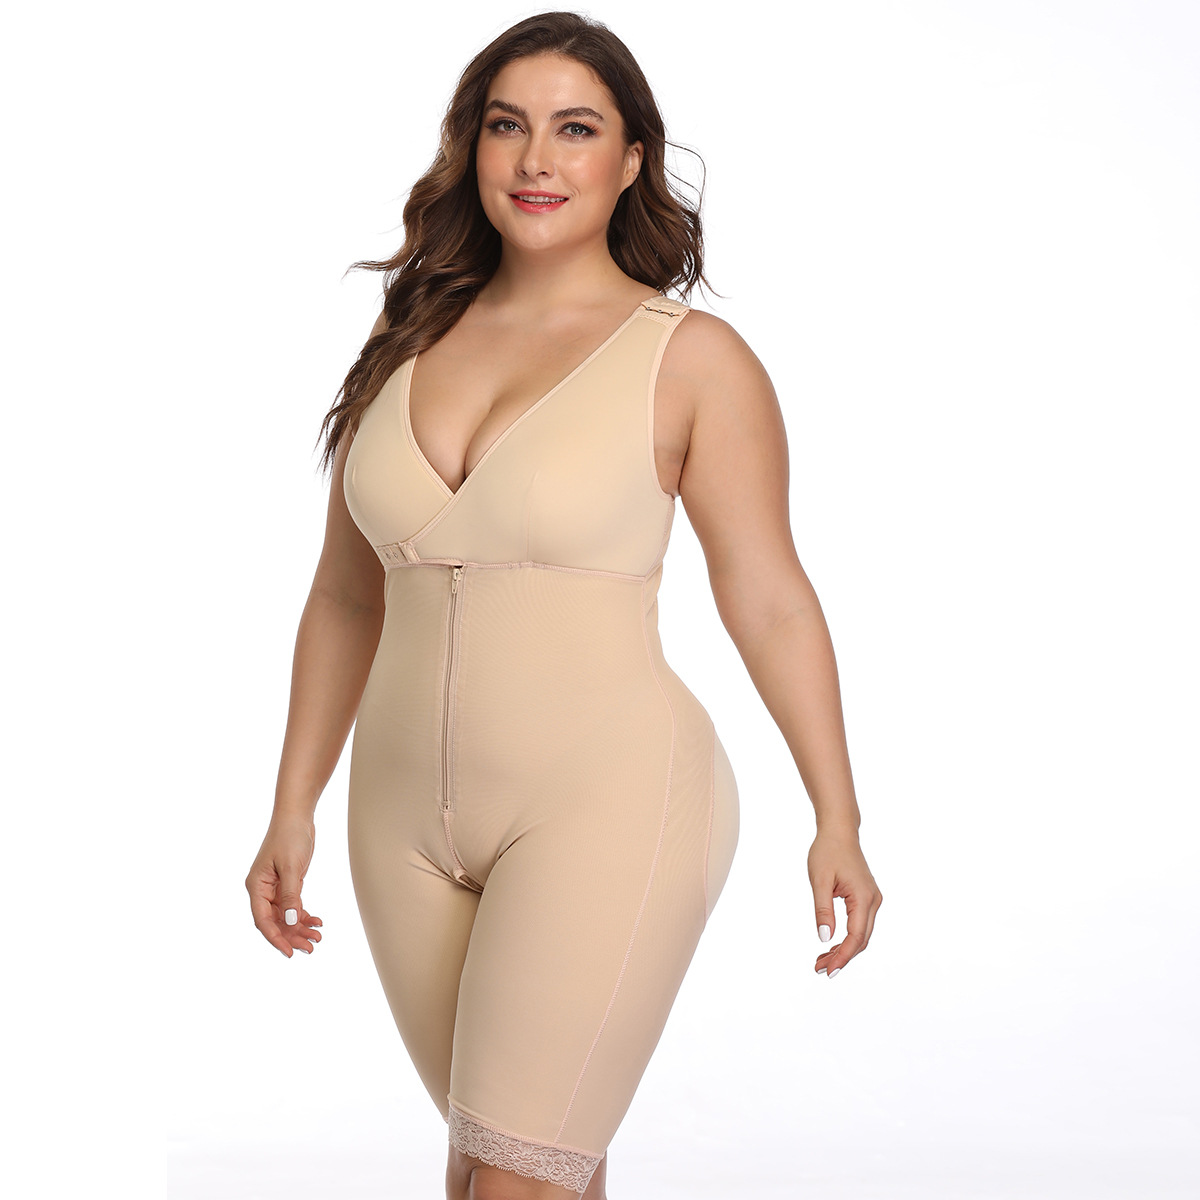 This post surgery compression garment adds hip dimension, a natural lifting effect and control